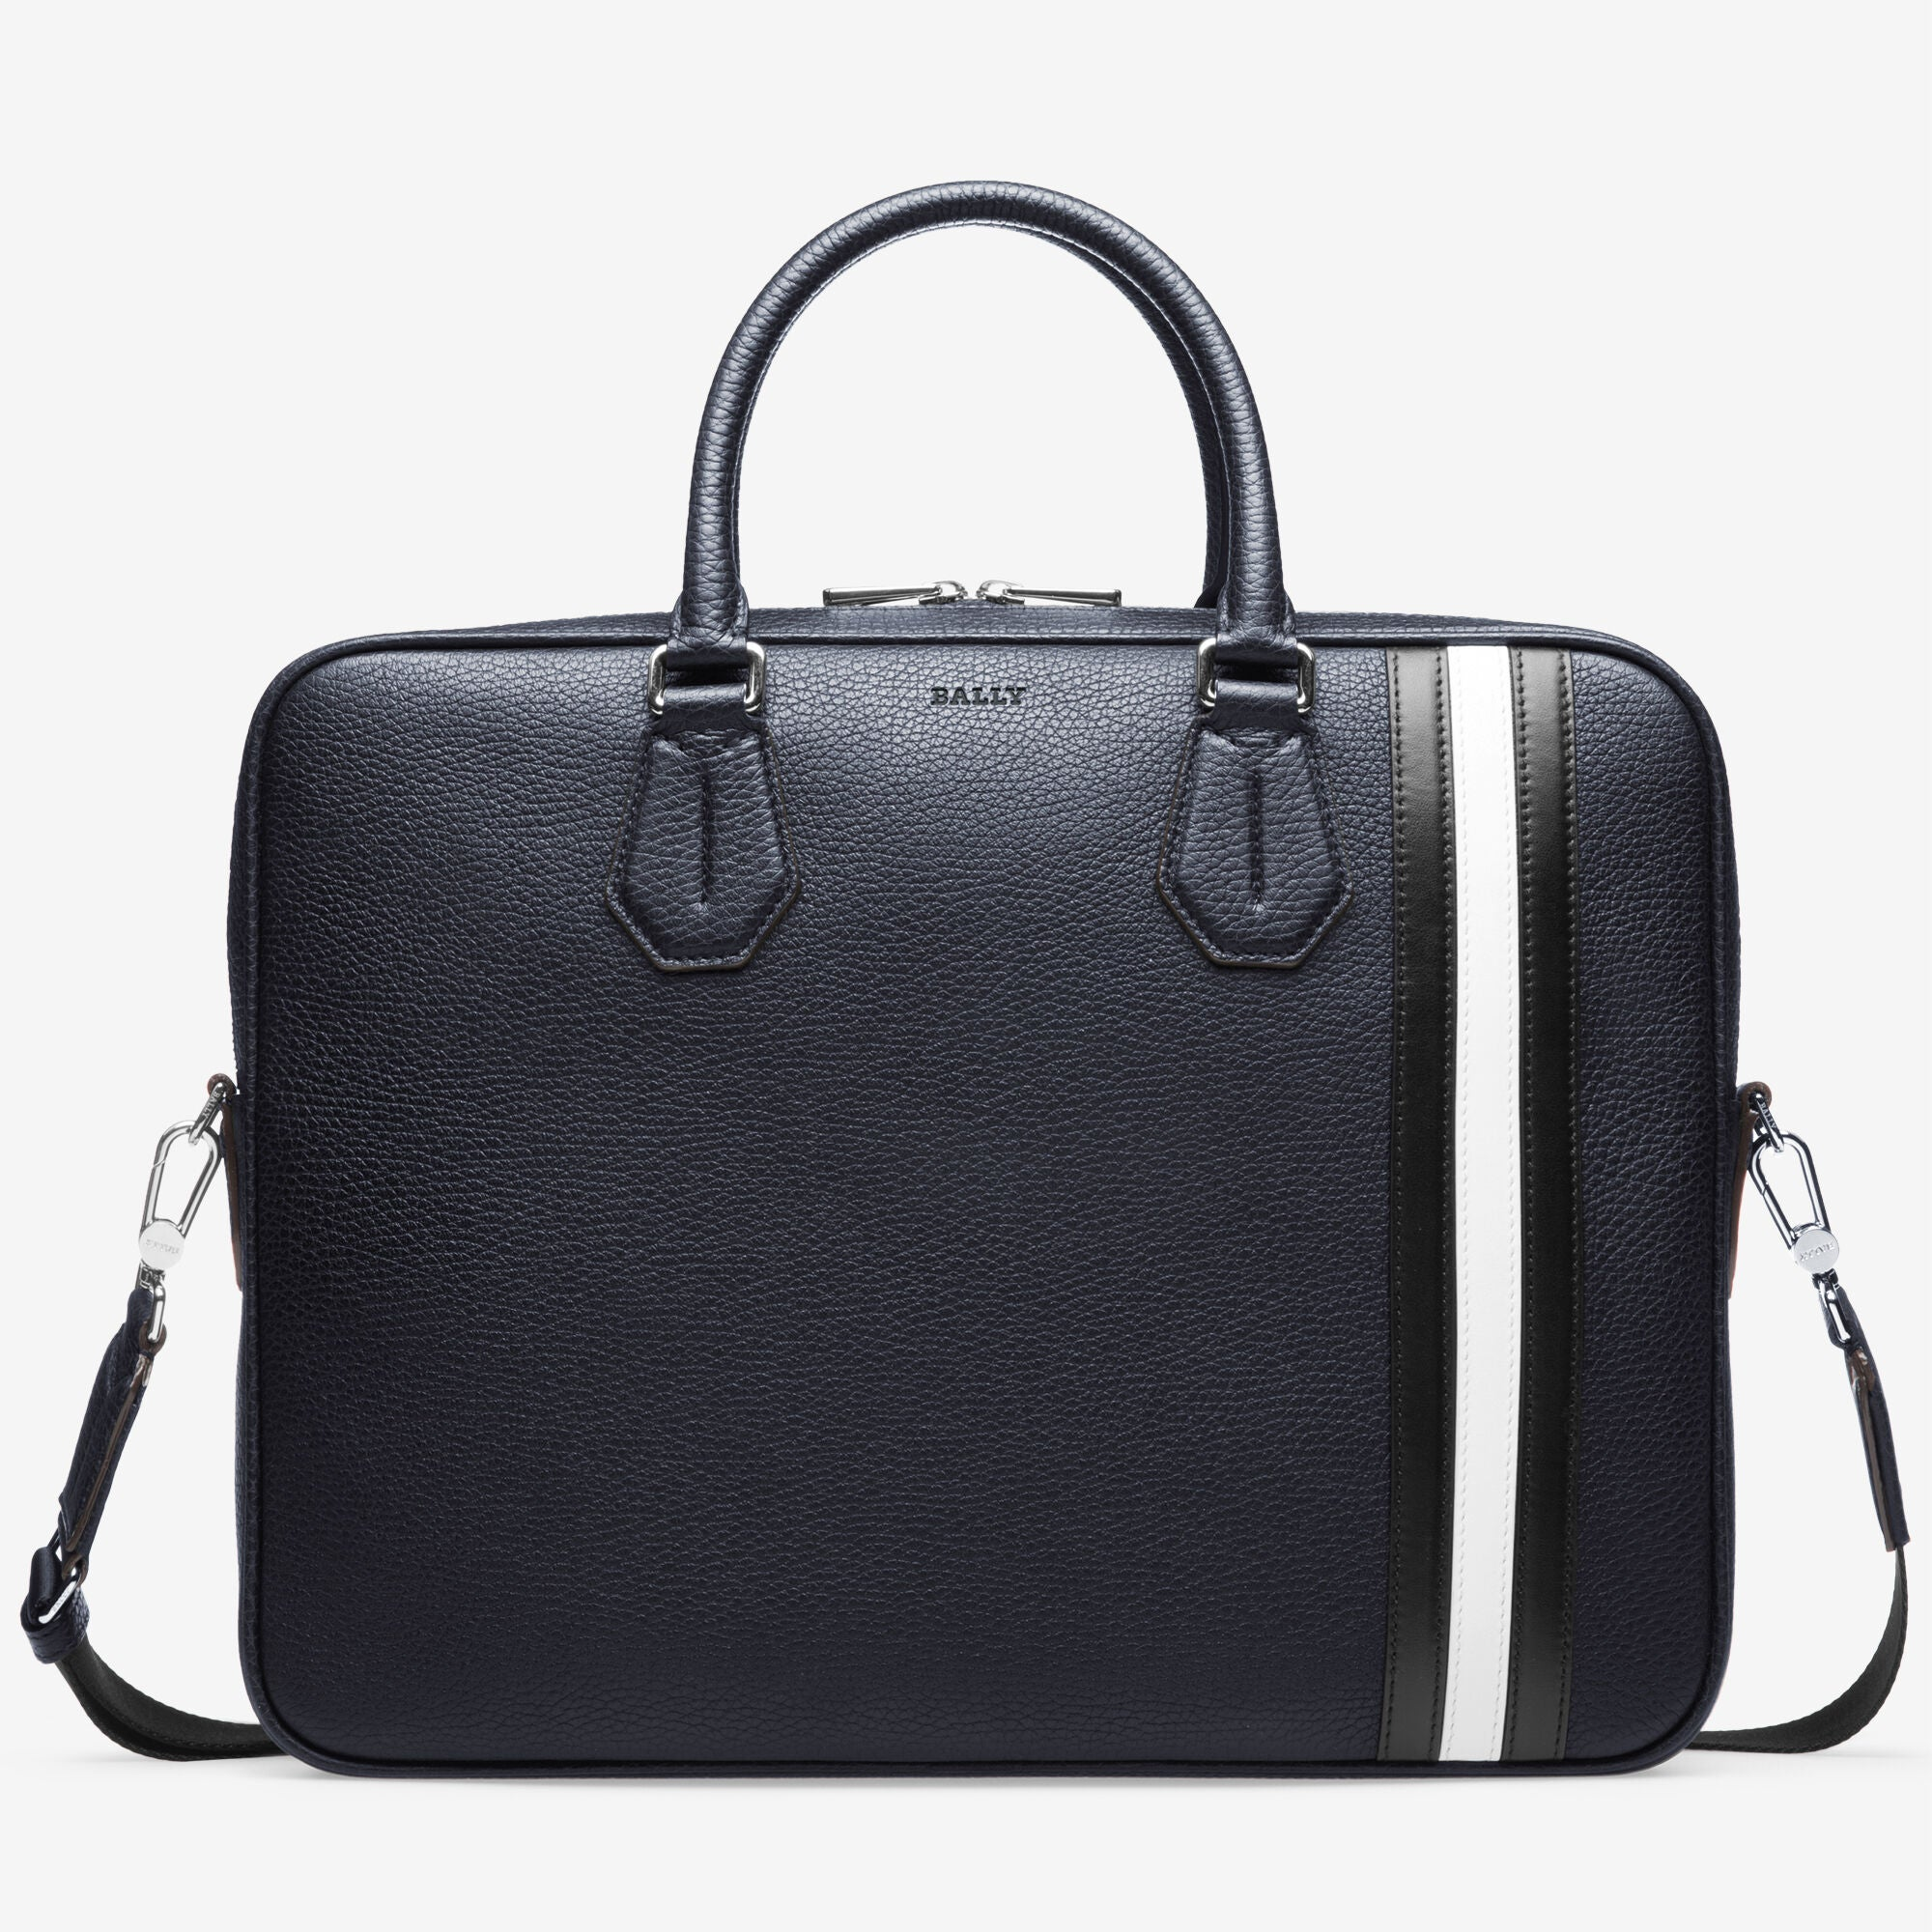 Bally STAZ Men's Grained Leather Business Bag in Ink